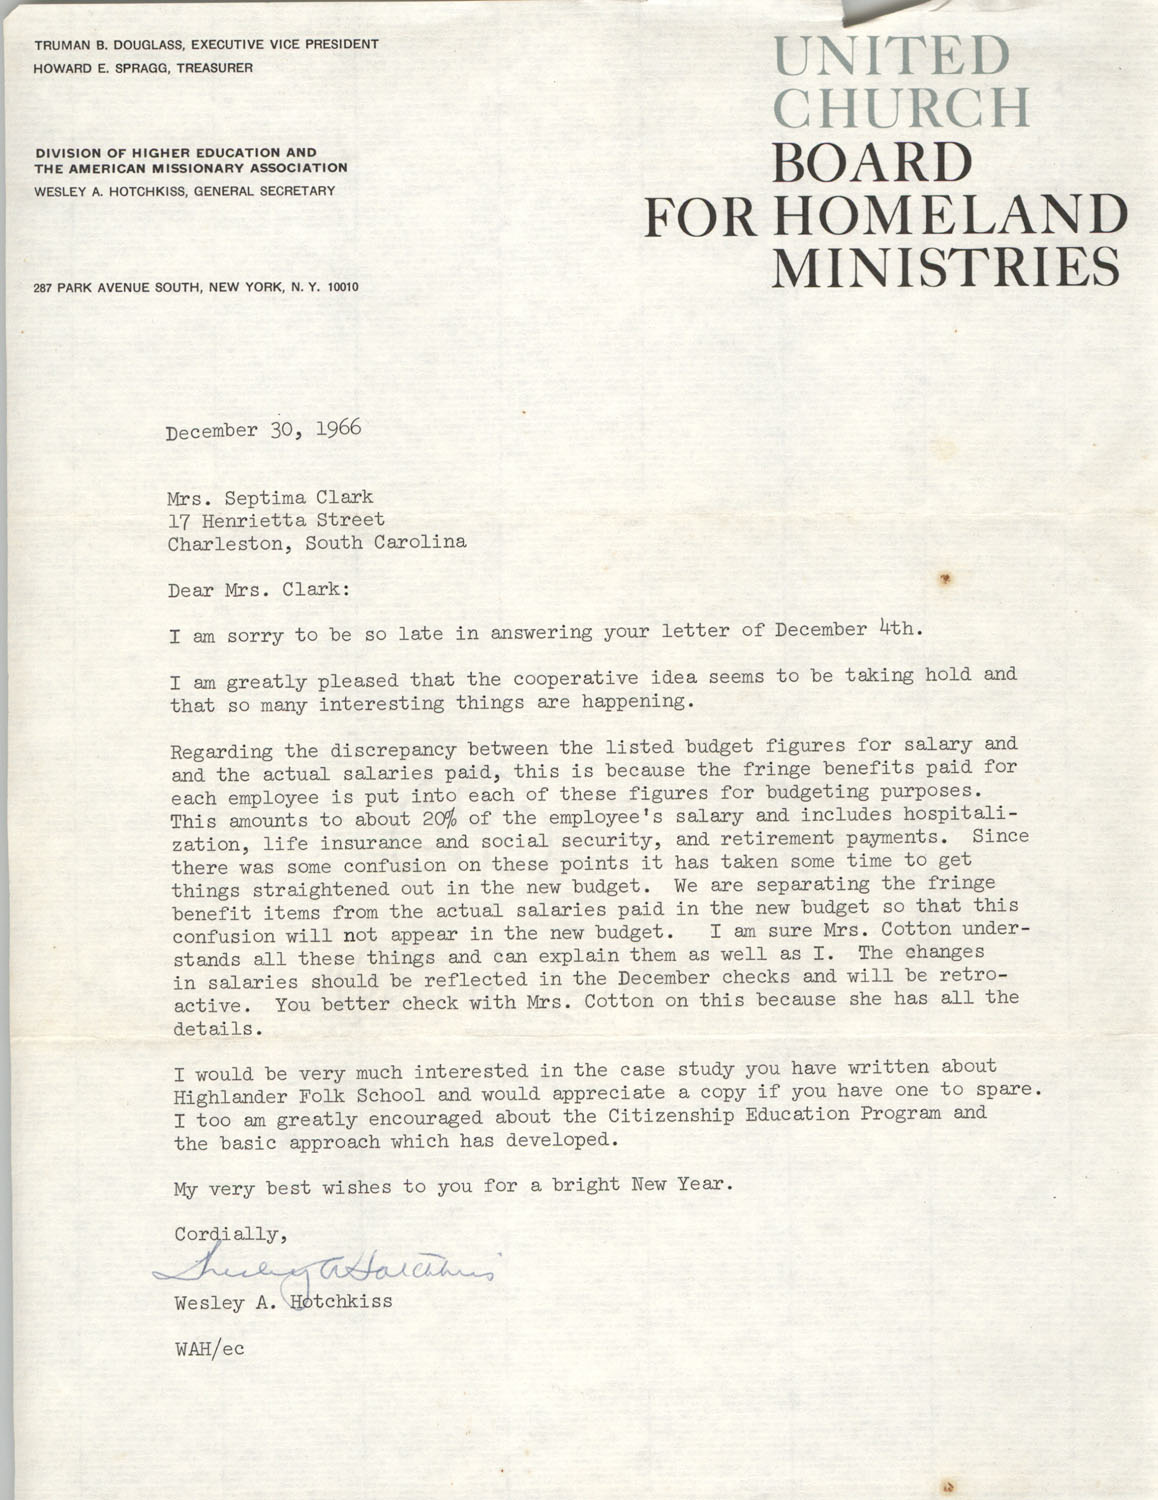 Letter from Wesley A. Hotchkiss to Septima P. Clark, December 30, 1966